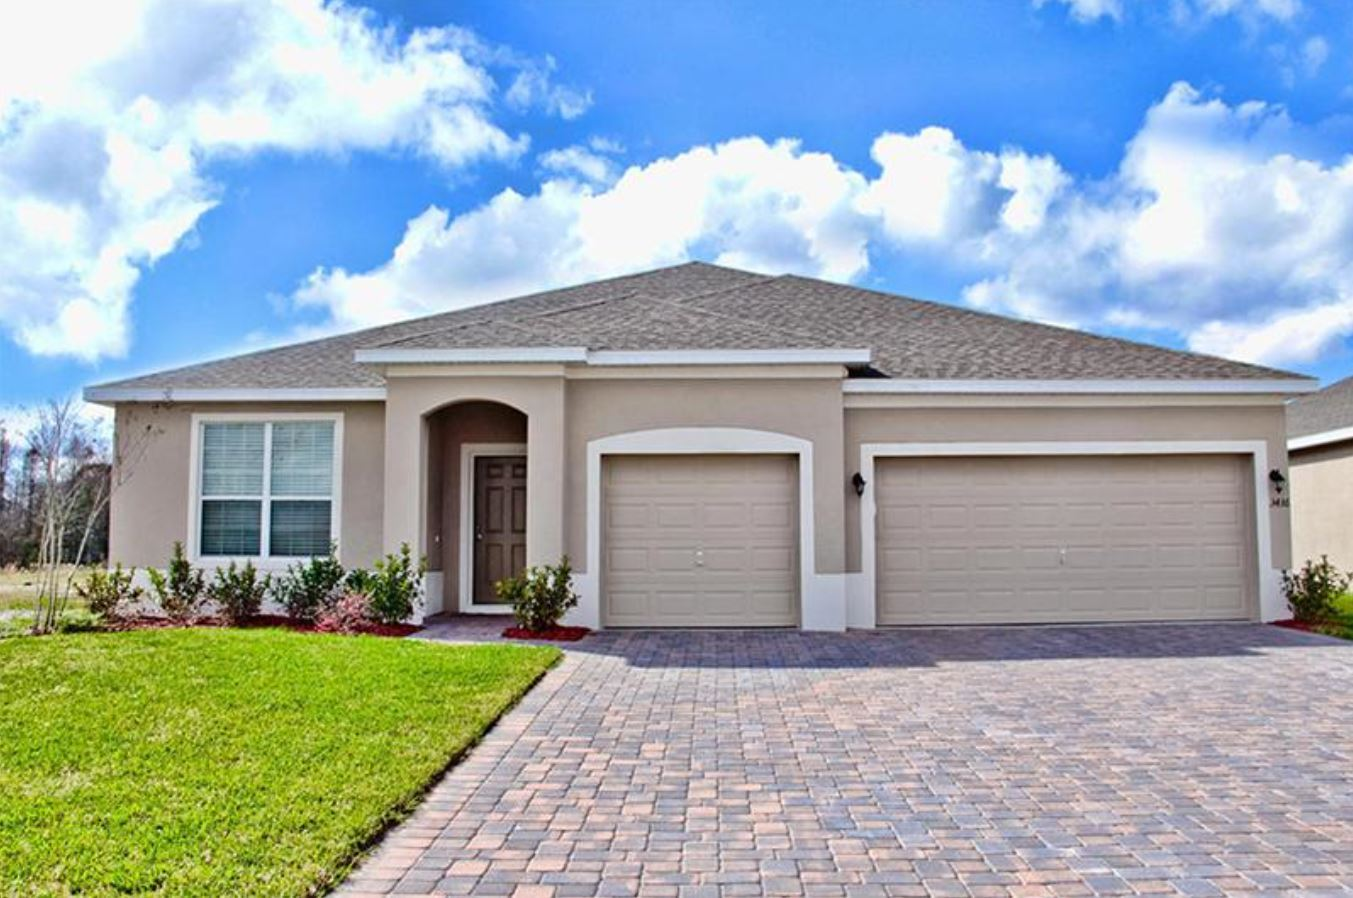 Photo of Hanover Reserve in Saint Cloud, FL 34771